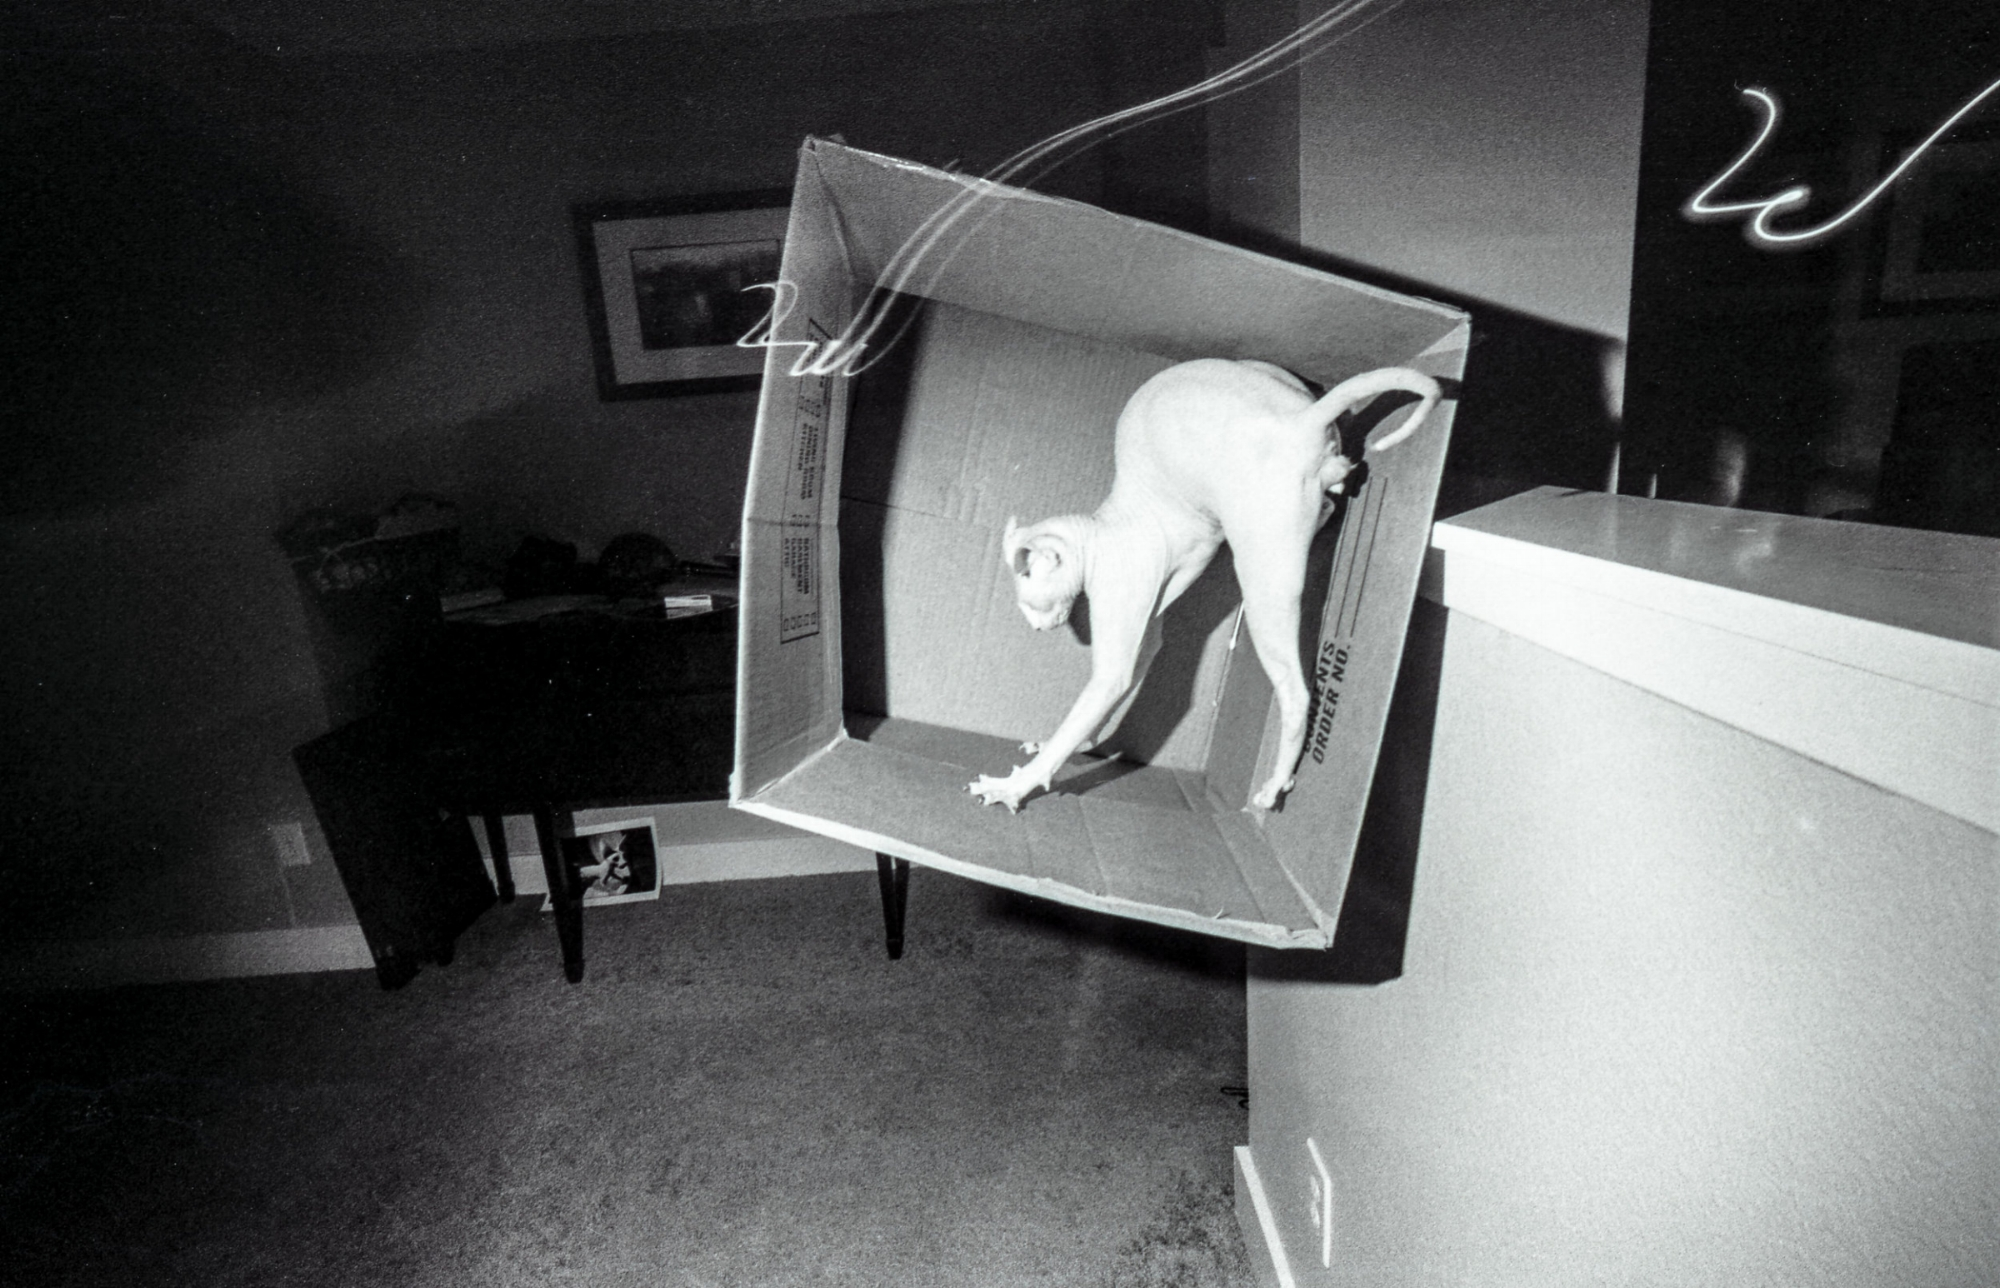 Photo by Clifton Barker. A hairless cat is in a moving box which is falling off a half-wall. A desk is in the background.